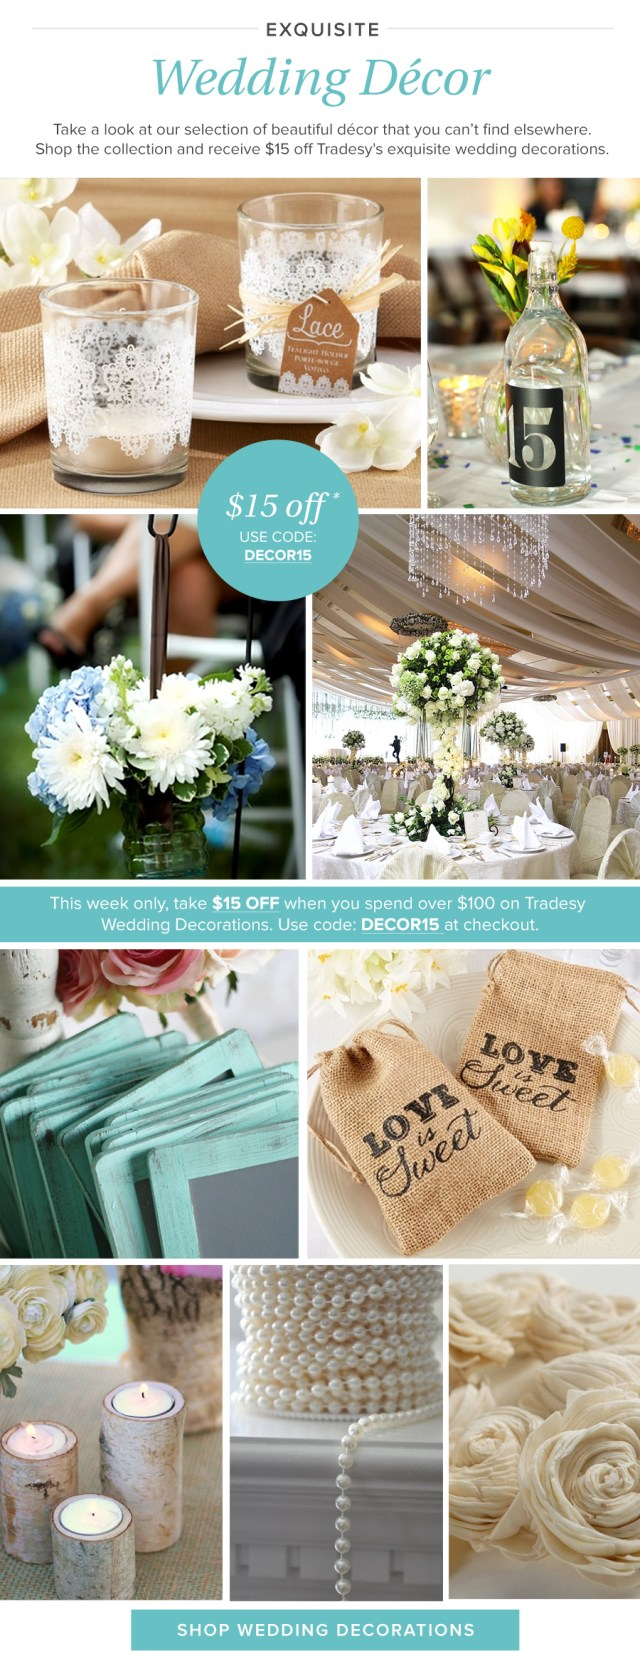 Tradesy Wedding Decor Wedding Wise Wednesday May 14 Los Angeles Wedding Planner